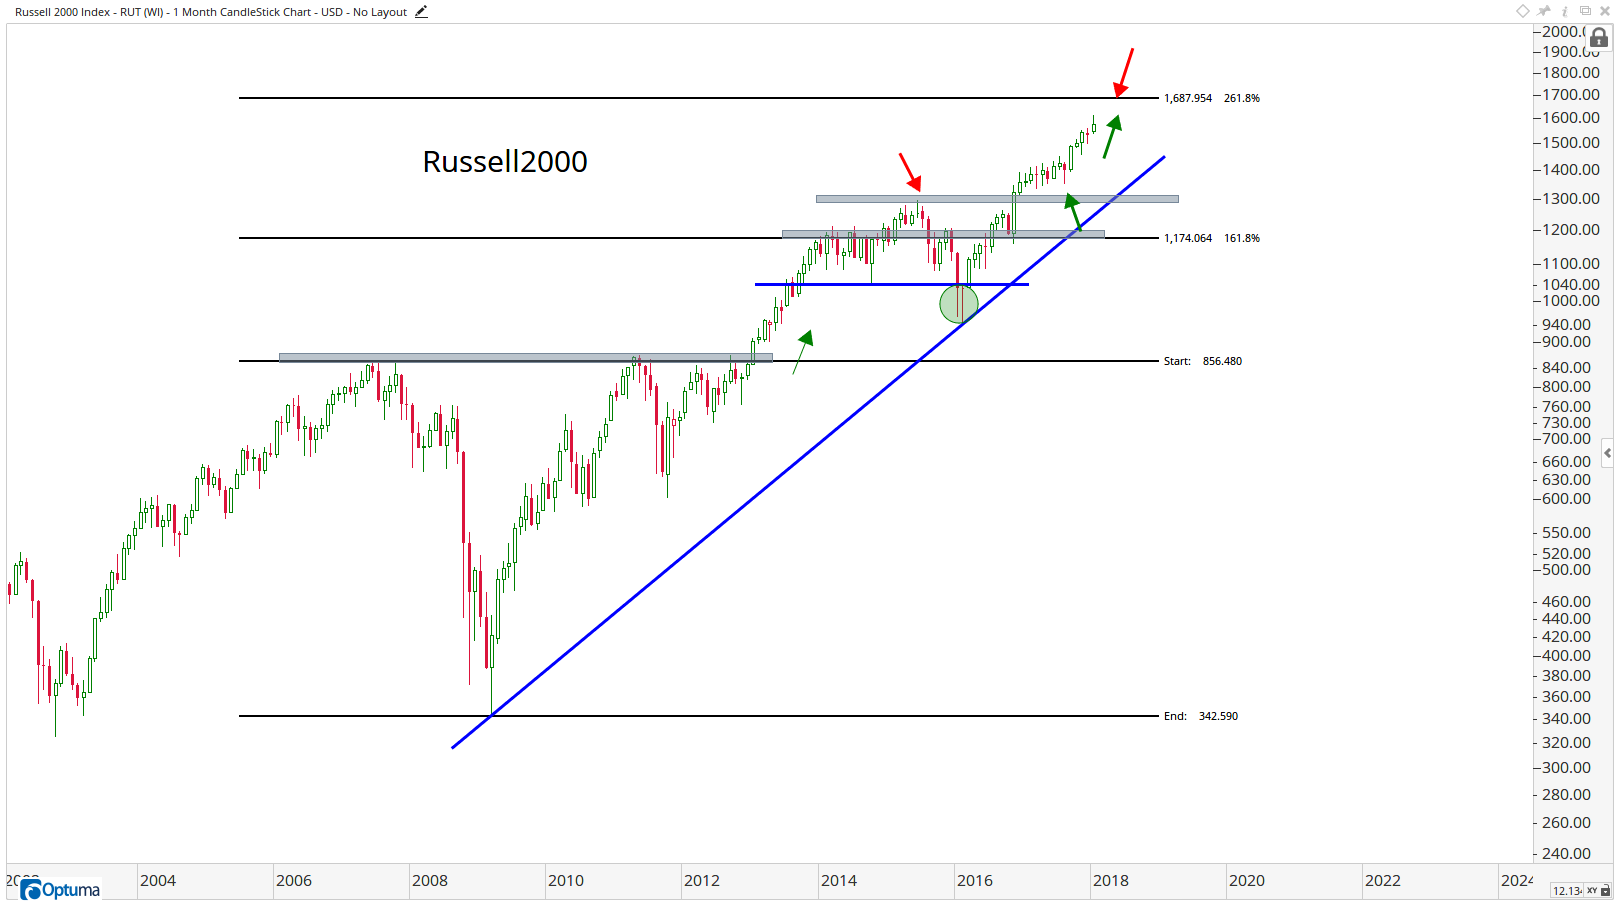 RUT - Russell 2000 Index8